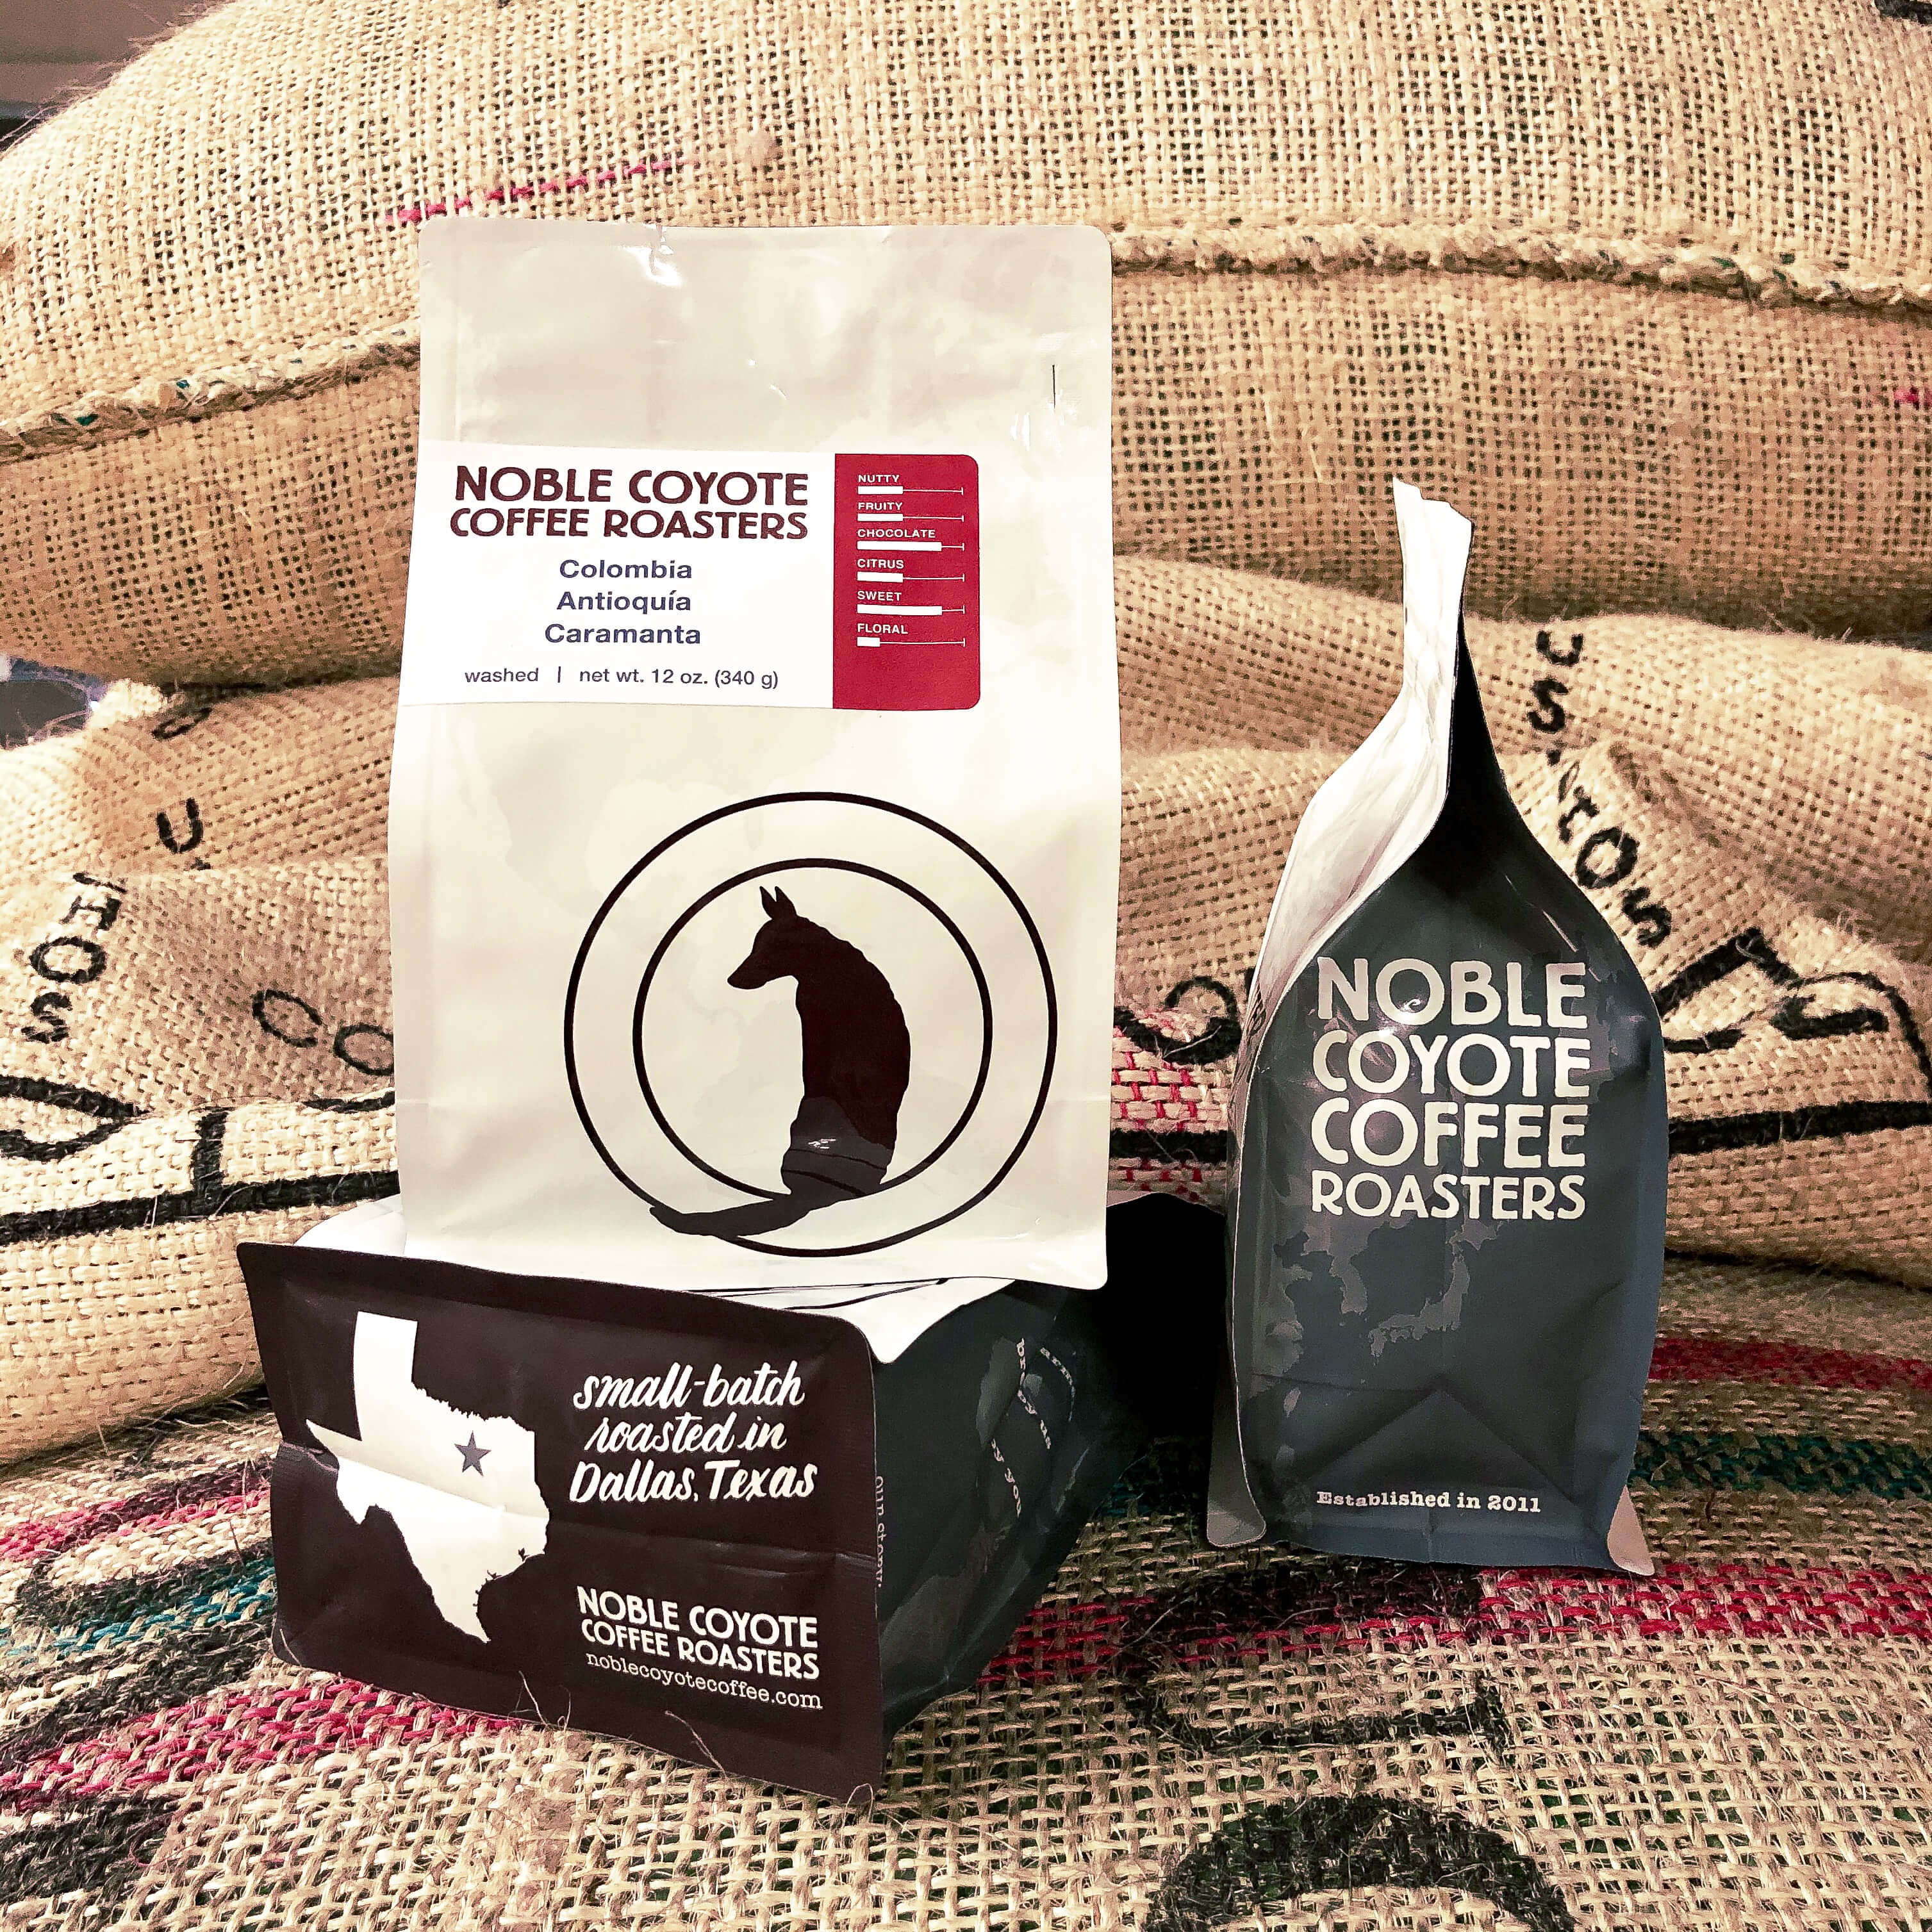 Colombia Caramanta from Noble Coyote Coffee Roasters